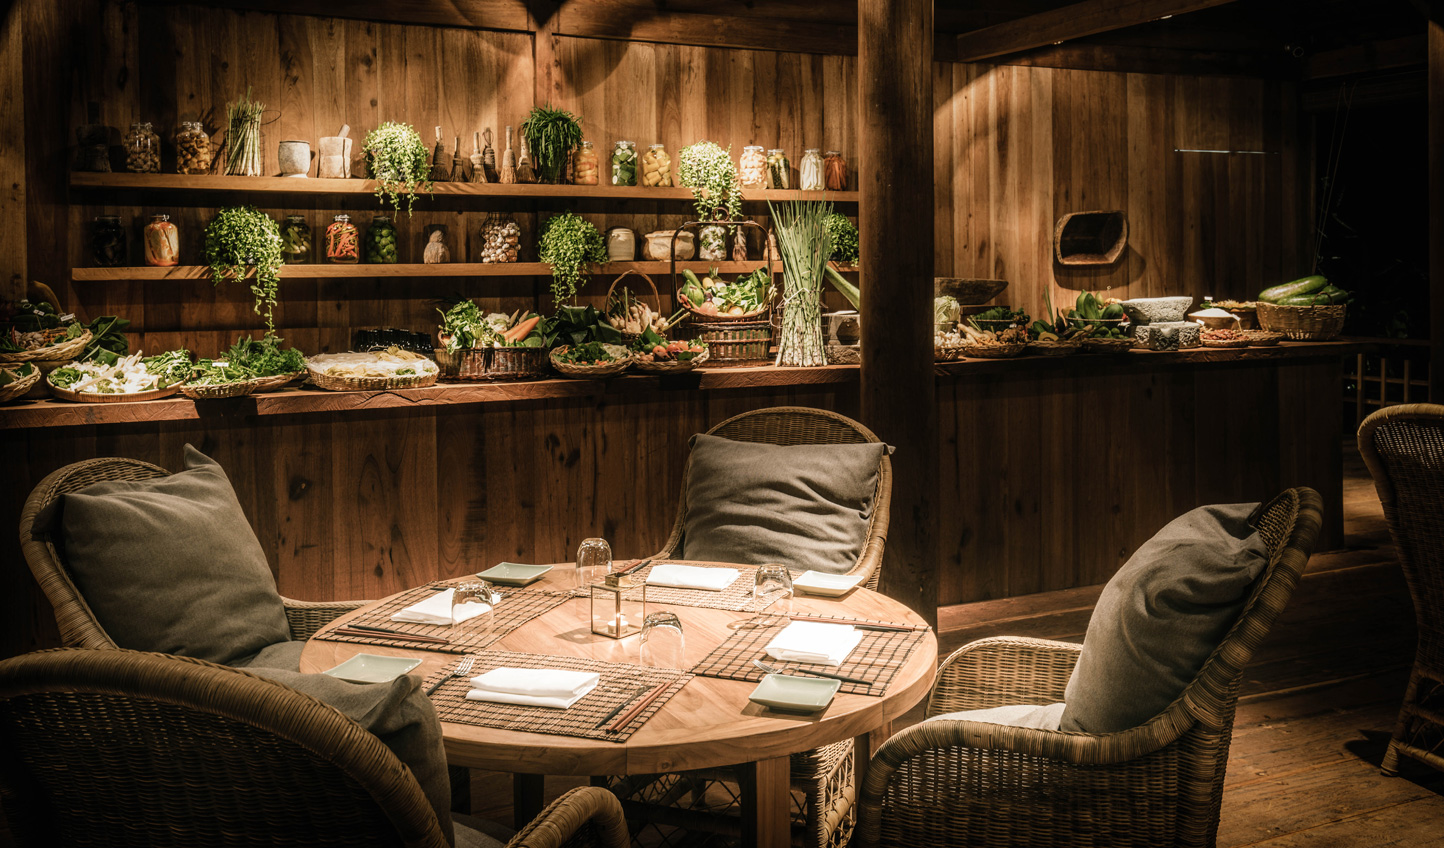 Dine on fresh cuisine straight from the gardens and paddy fields